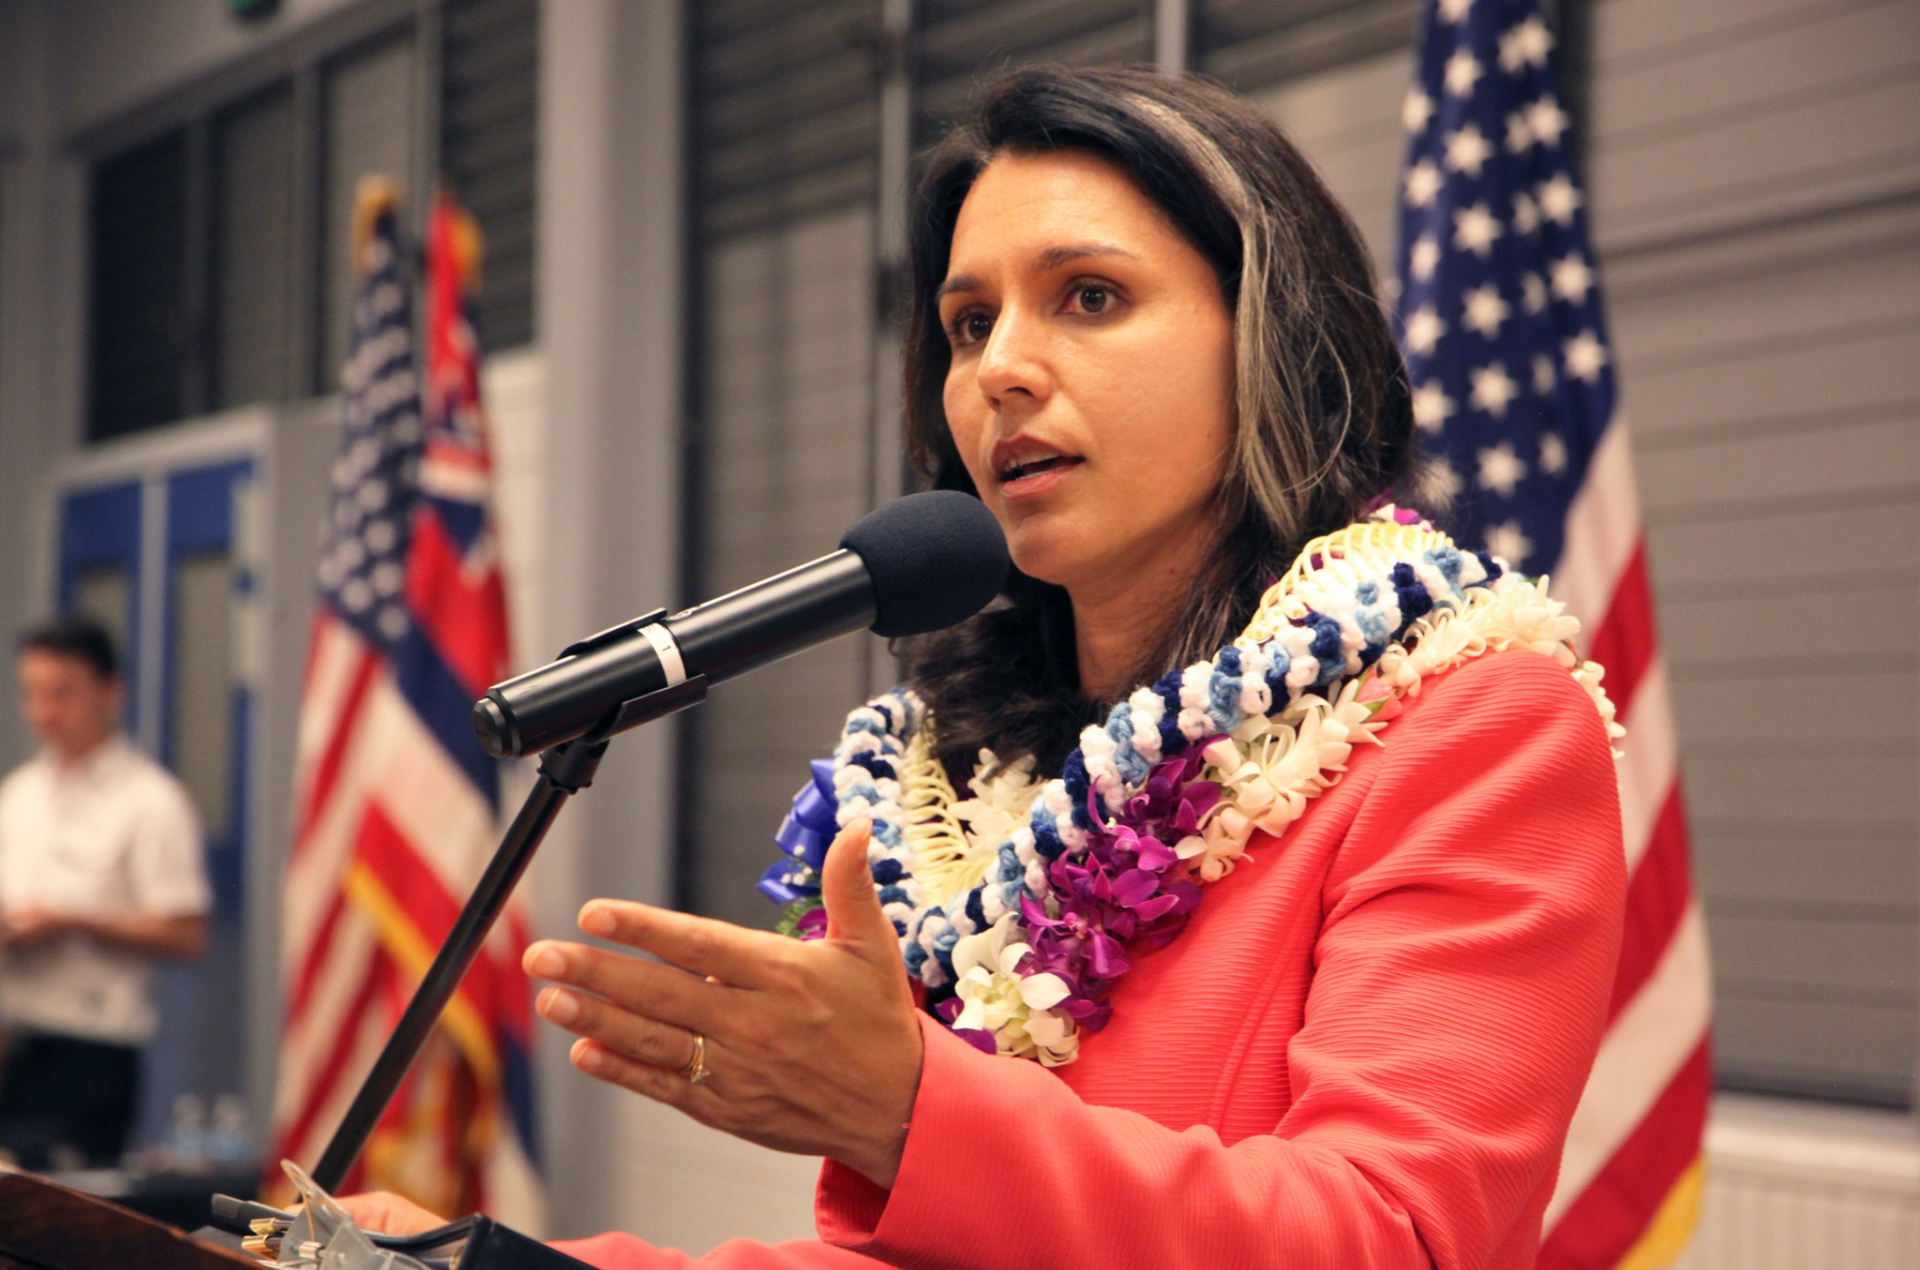 4 Reasons Tulsi Gabbard Could Shock the Media, Party Establishment | Independent Voter News